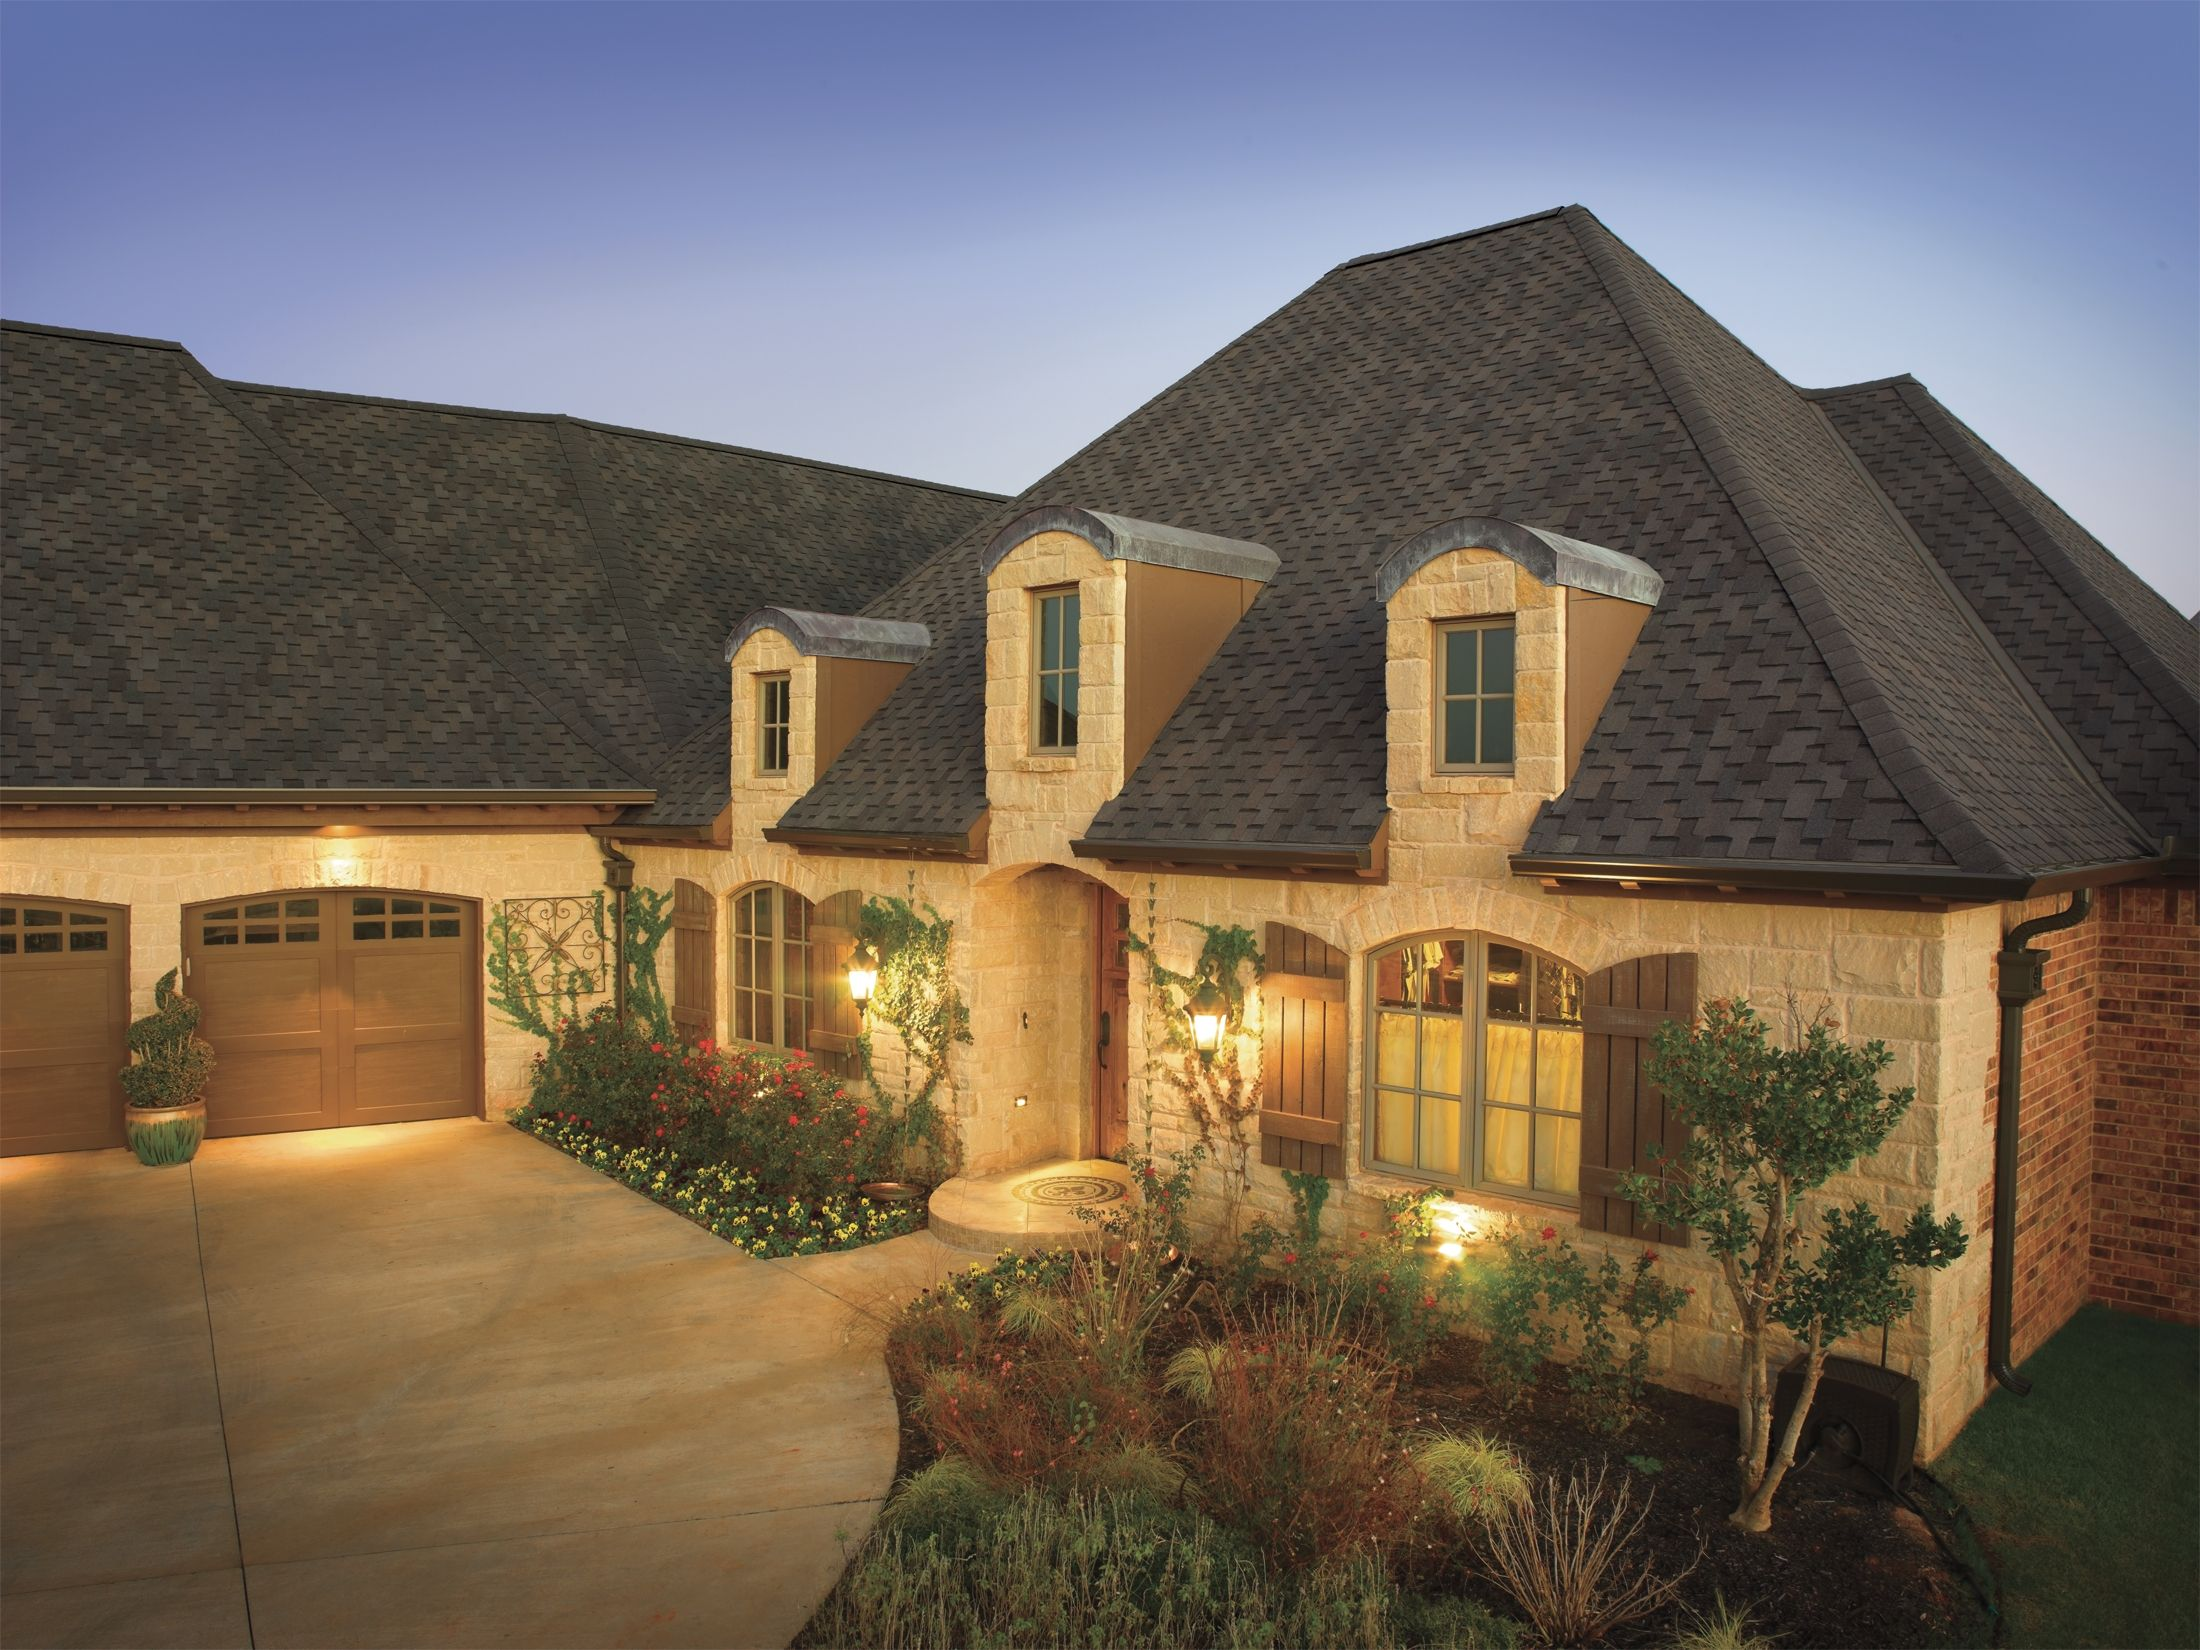 Tri State Windows Siding Roofing Gaf Grand Sequoia Ir Dusky Gray House Residential Roofing House Exterior Roofing